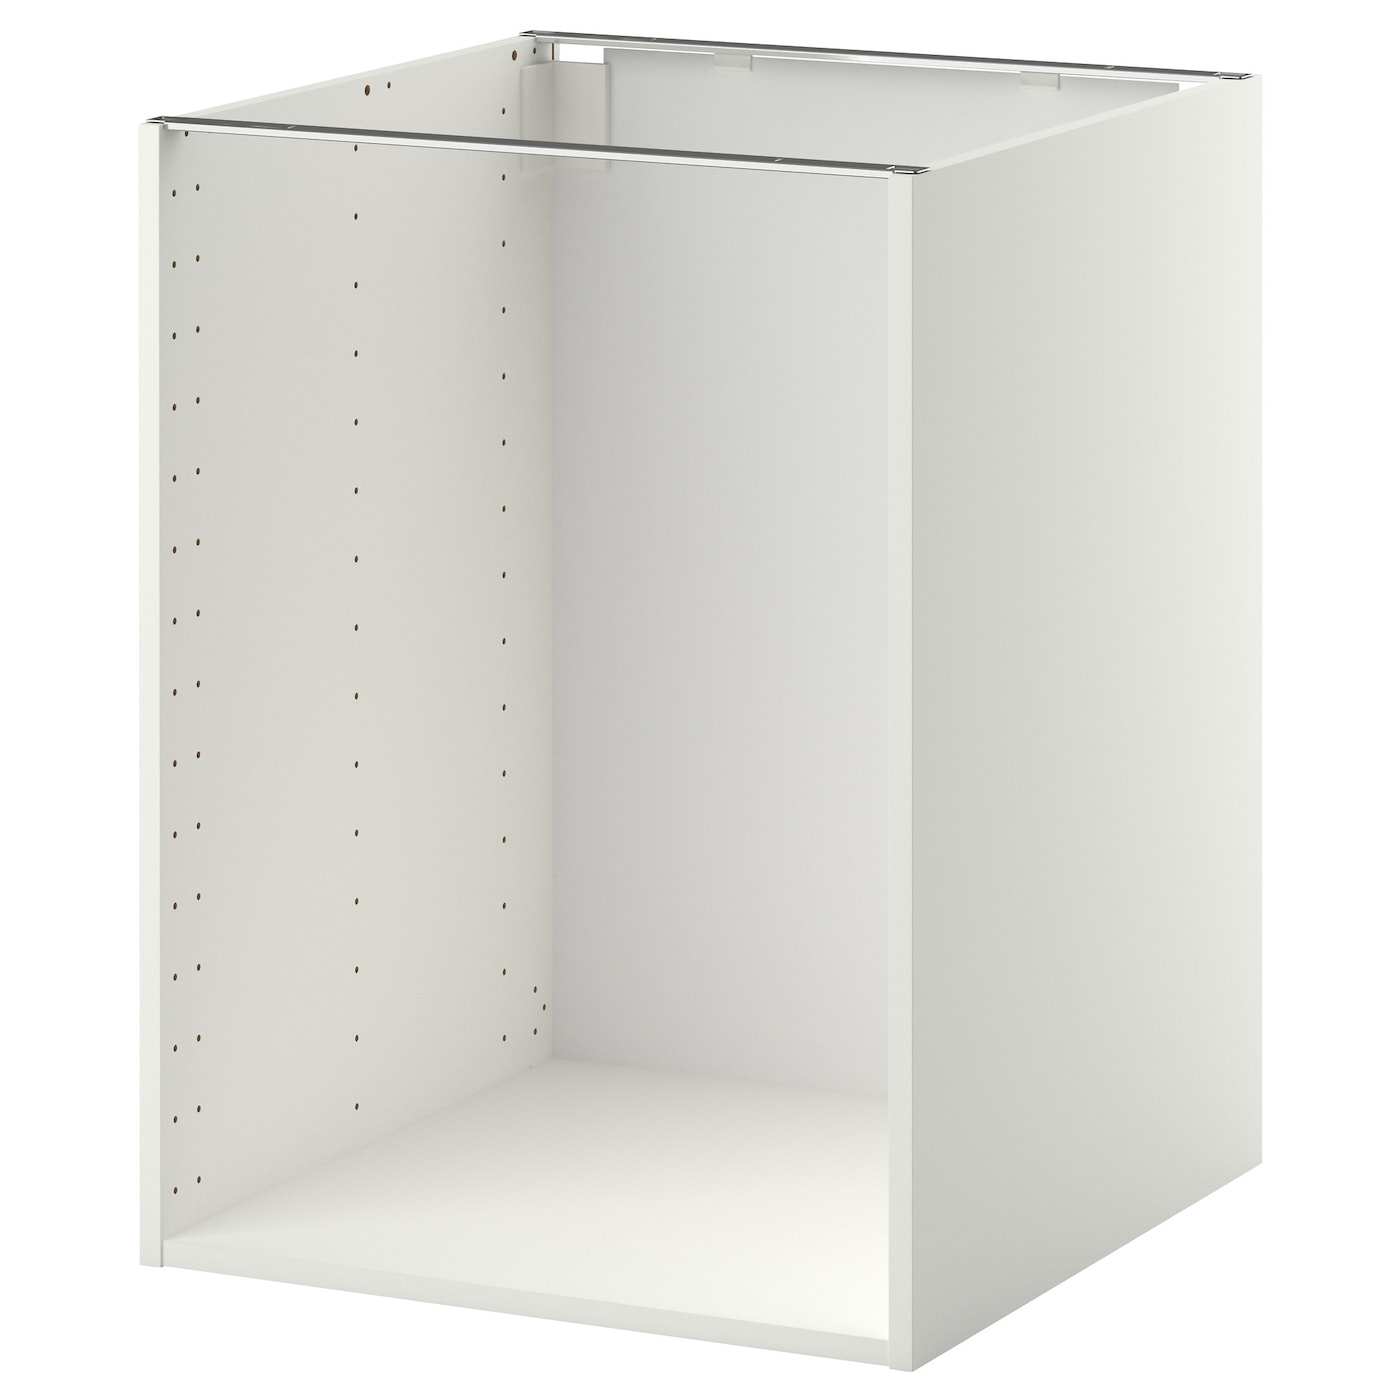 metod base cabinet frame white 60x60x80 cm ikea. Black Bedroom Furniture Sets. Home Design Ideas